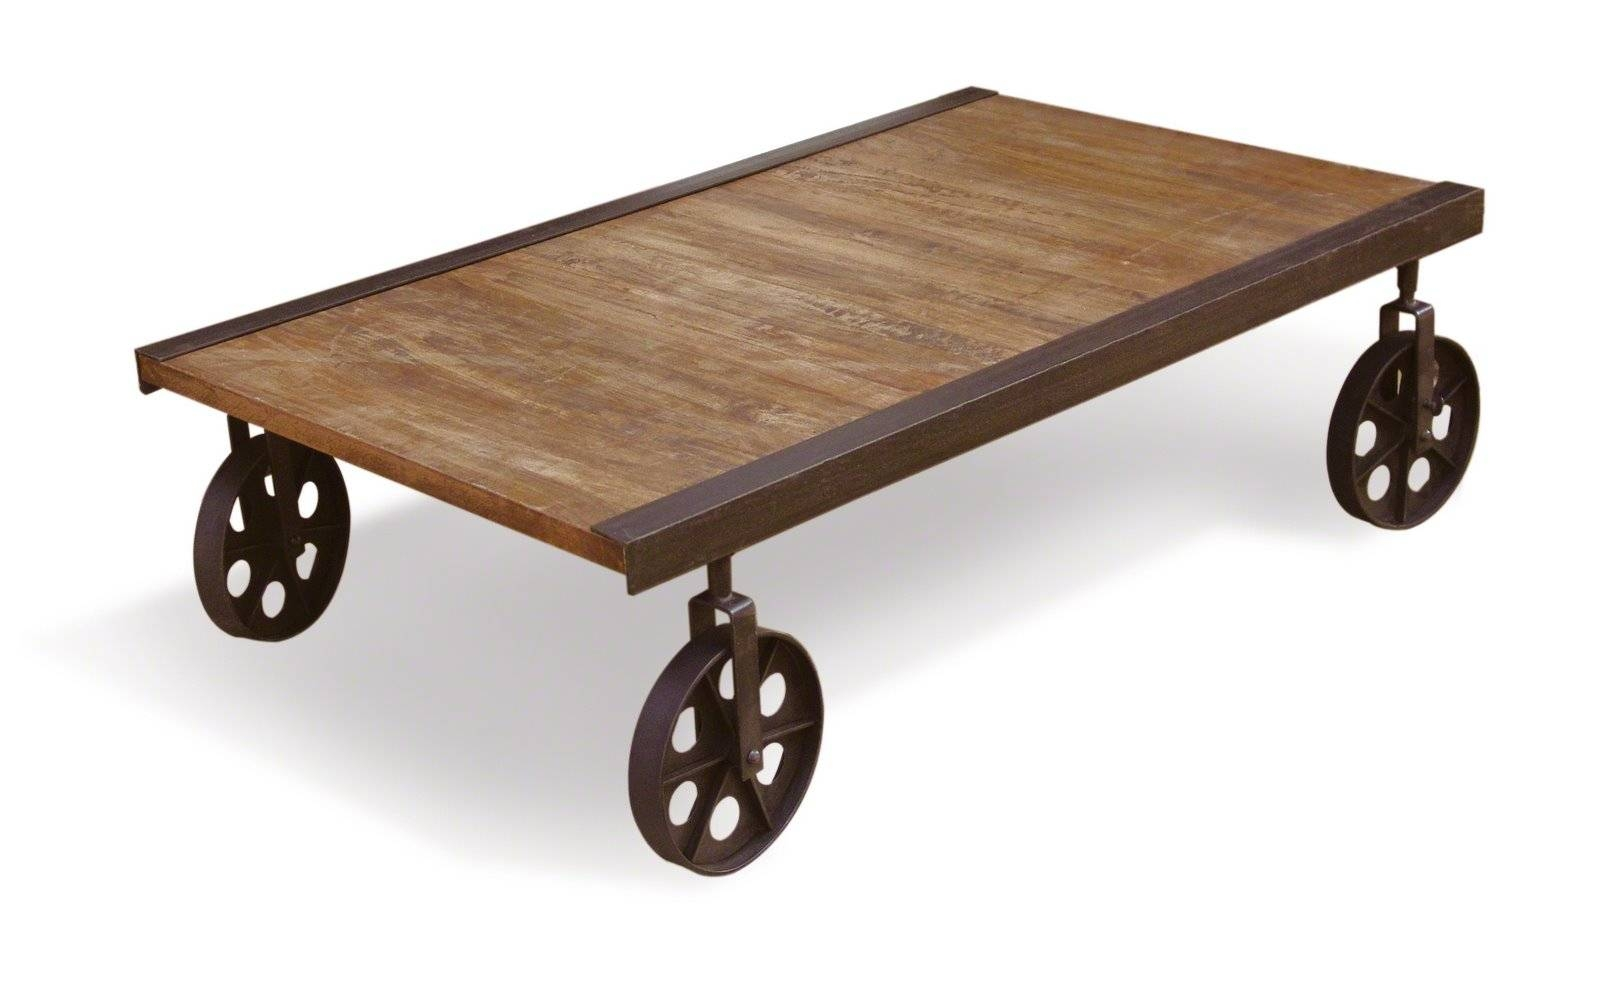 Make A Rustic Coffee Table With Wheels regarding Rustic Coffee Table With Wheels (Image 21 of 30)